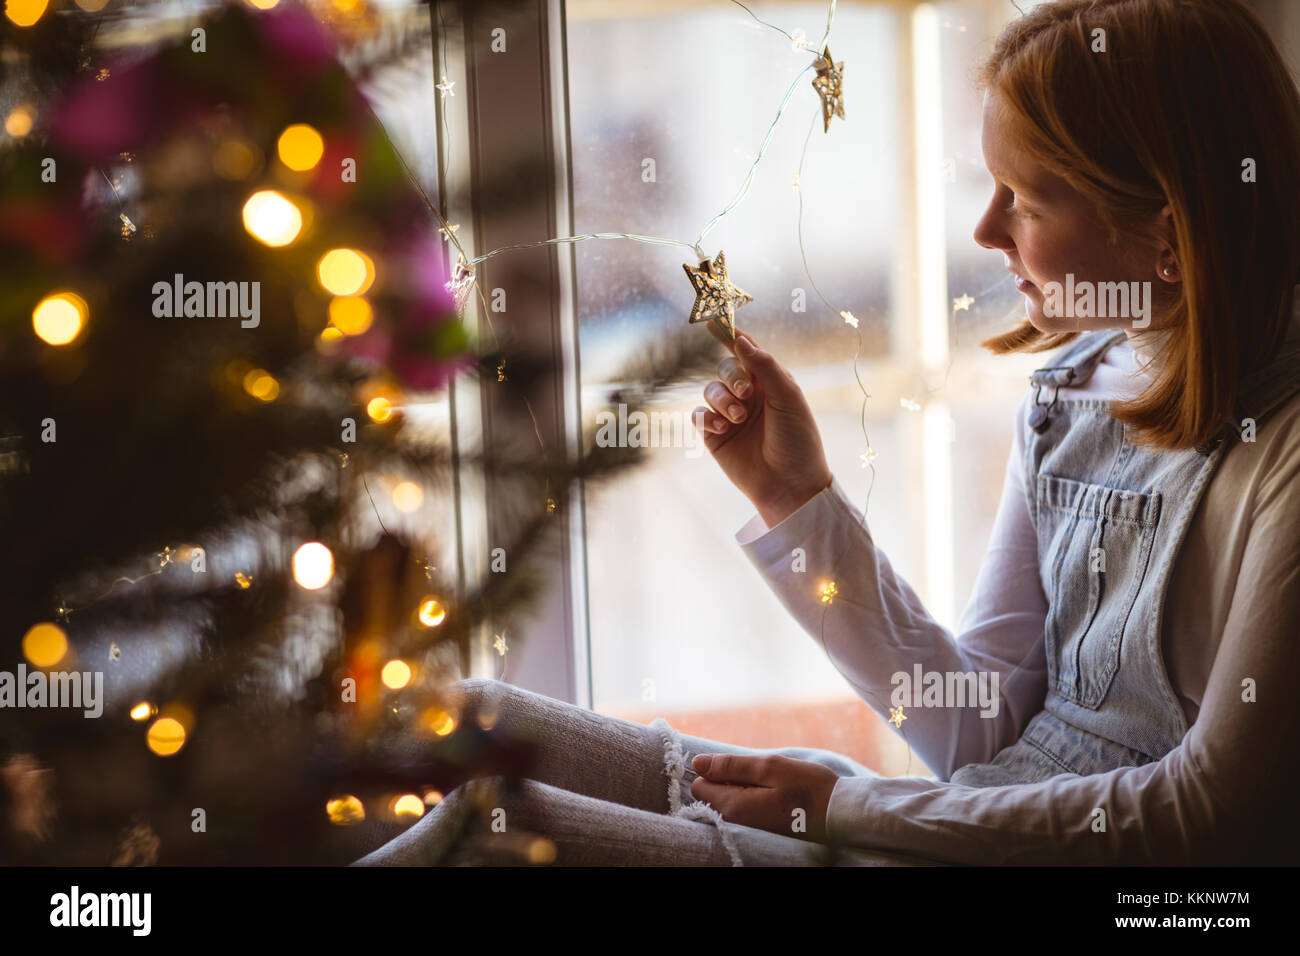 Girl sitting on window sill and looking at star shape - Stock Image